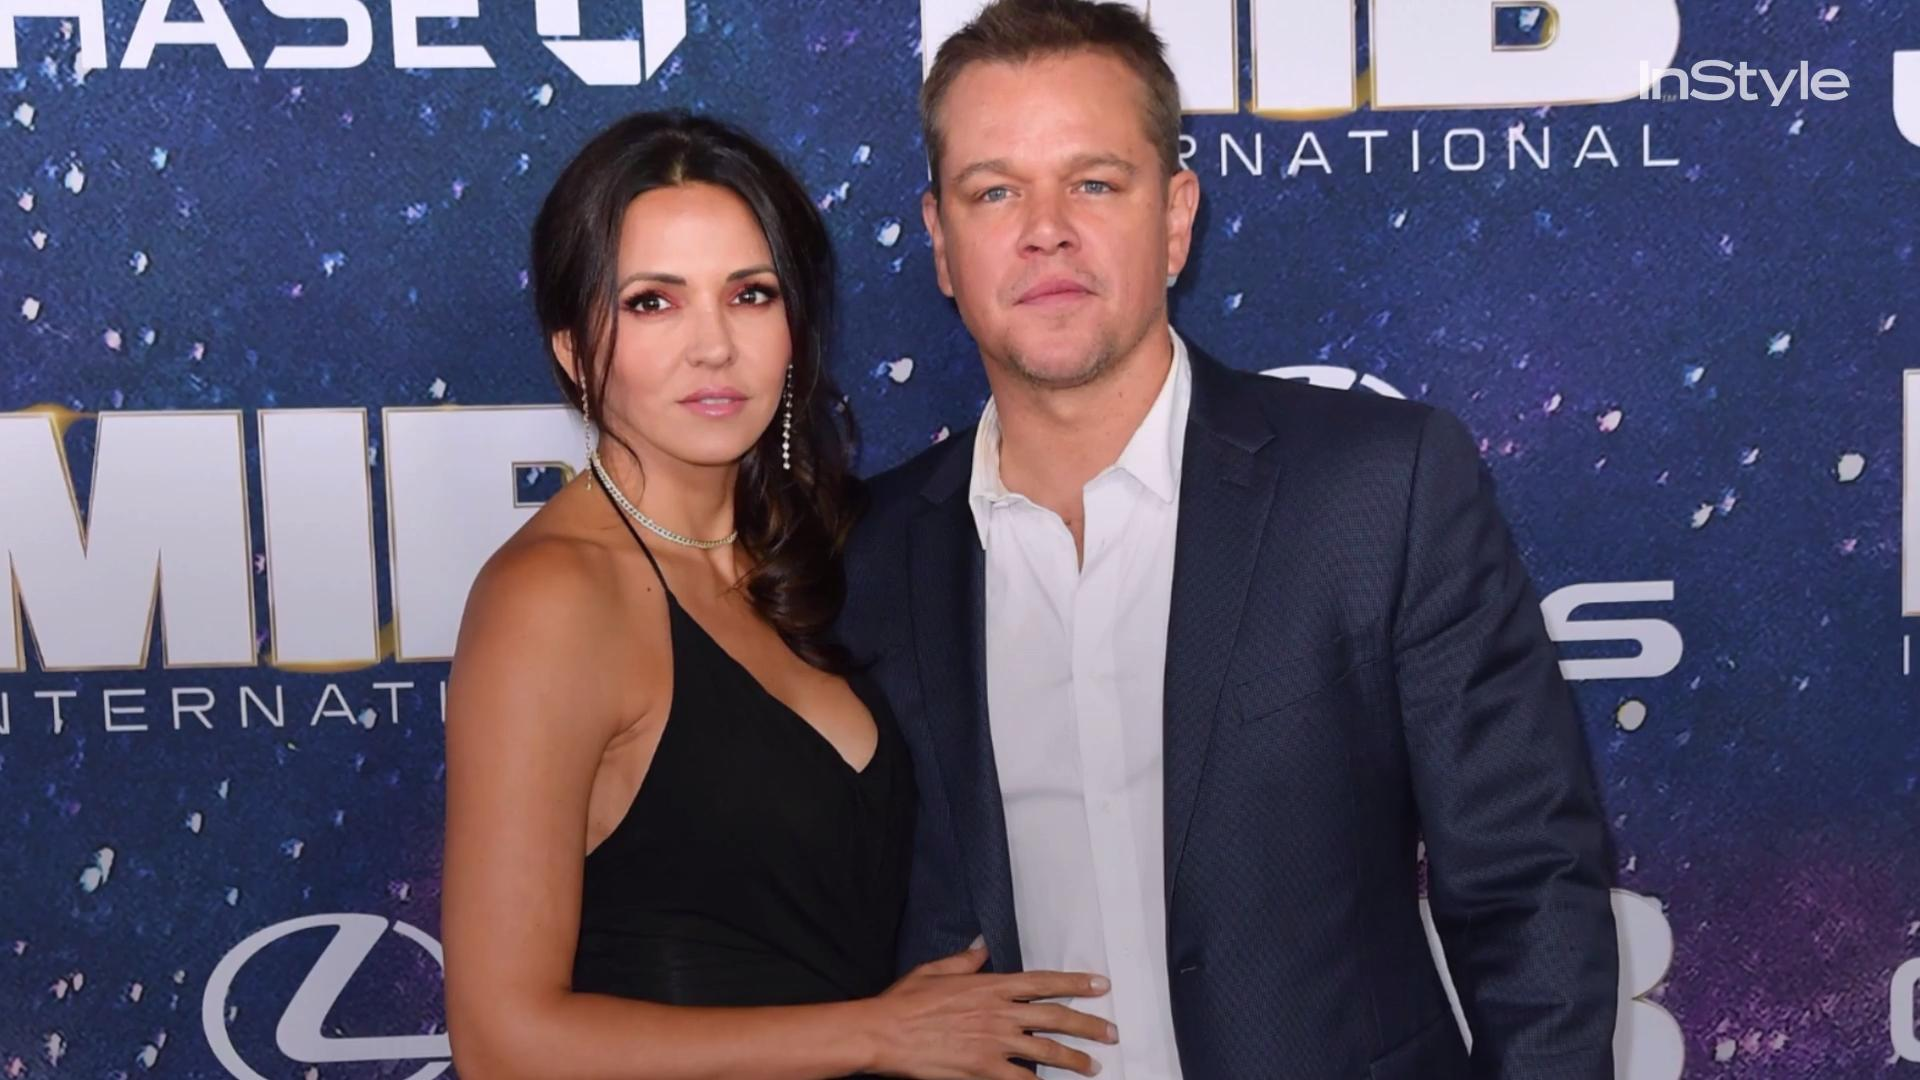 Matt Damon and Wife Luciana Barroso Packed on the PDA While on Vacation in Italy